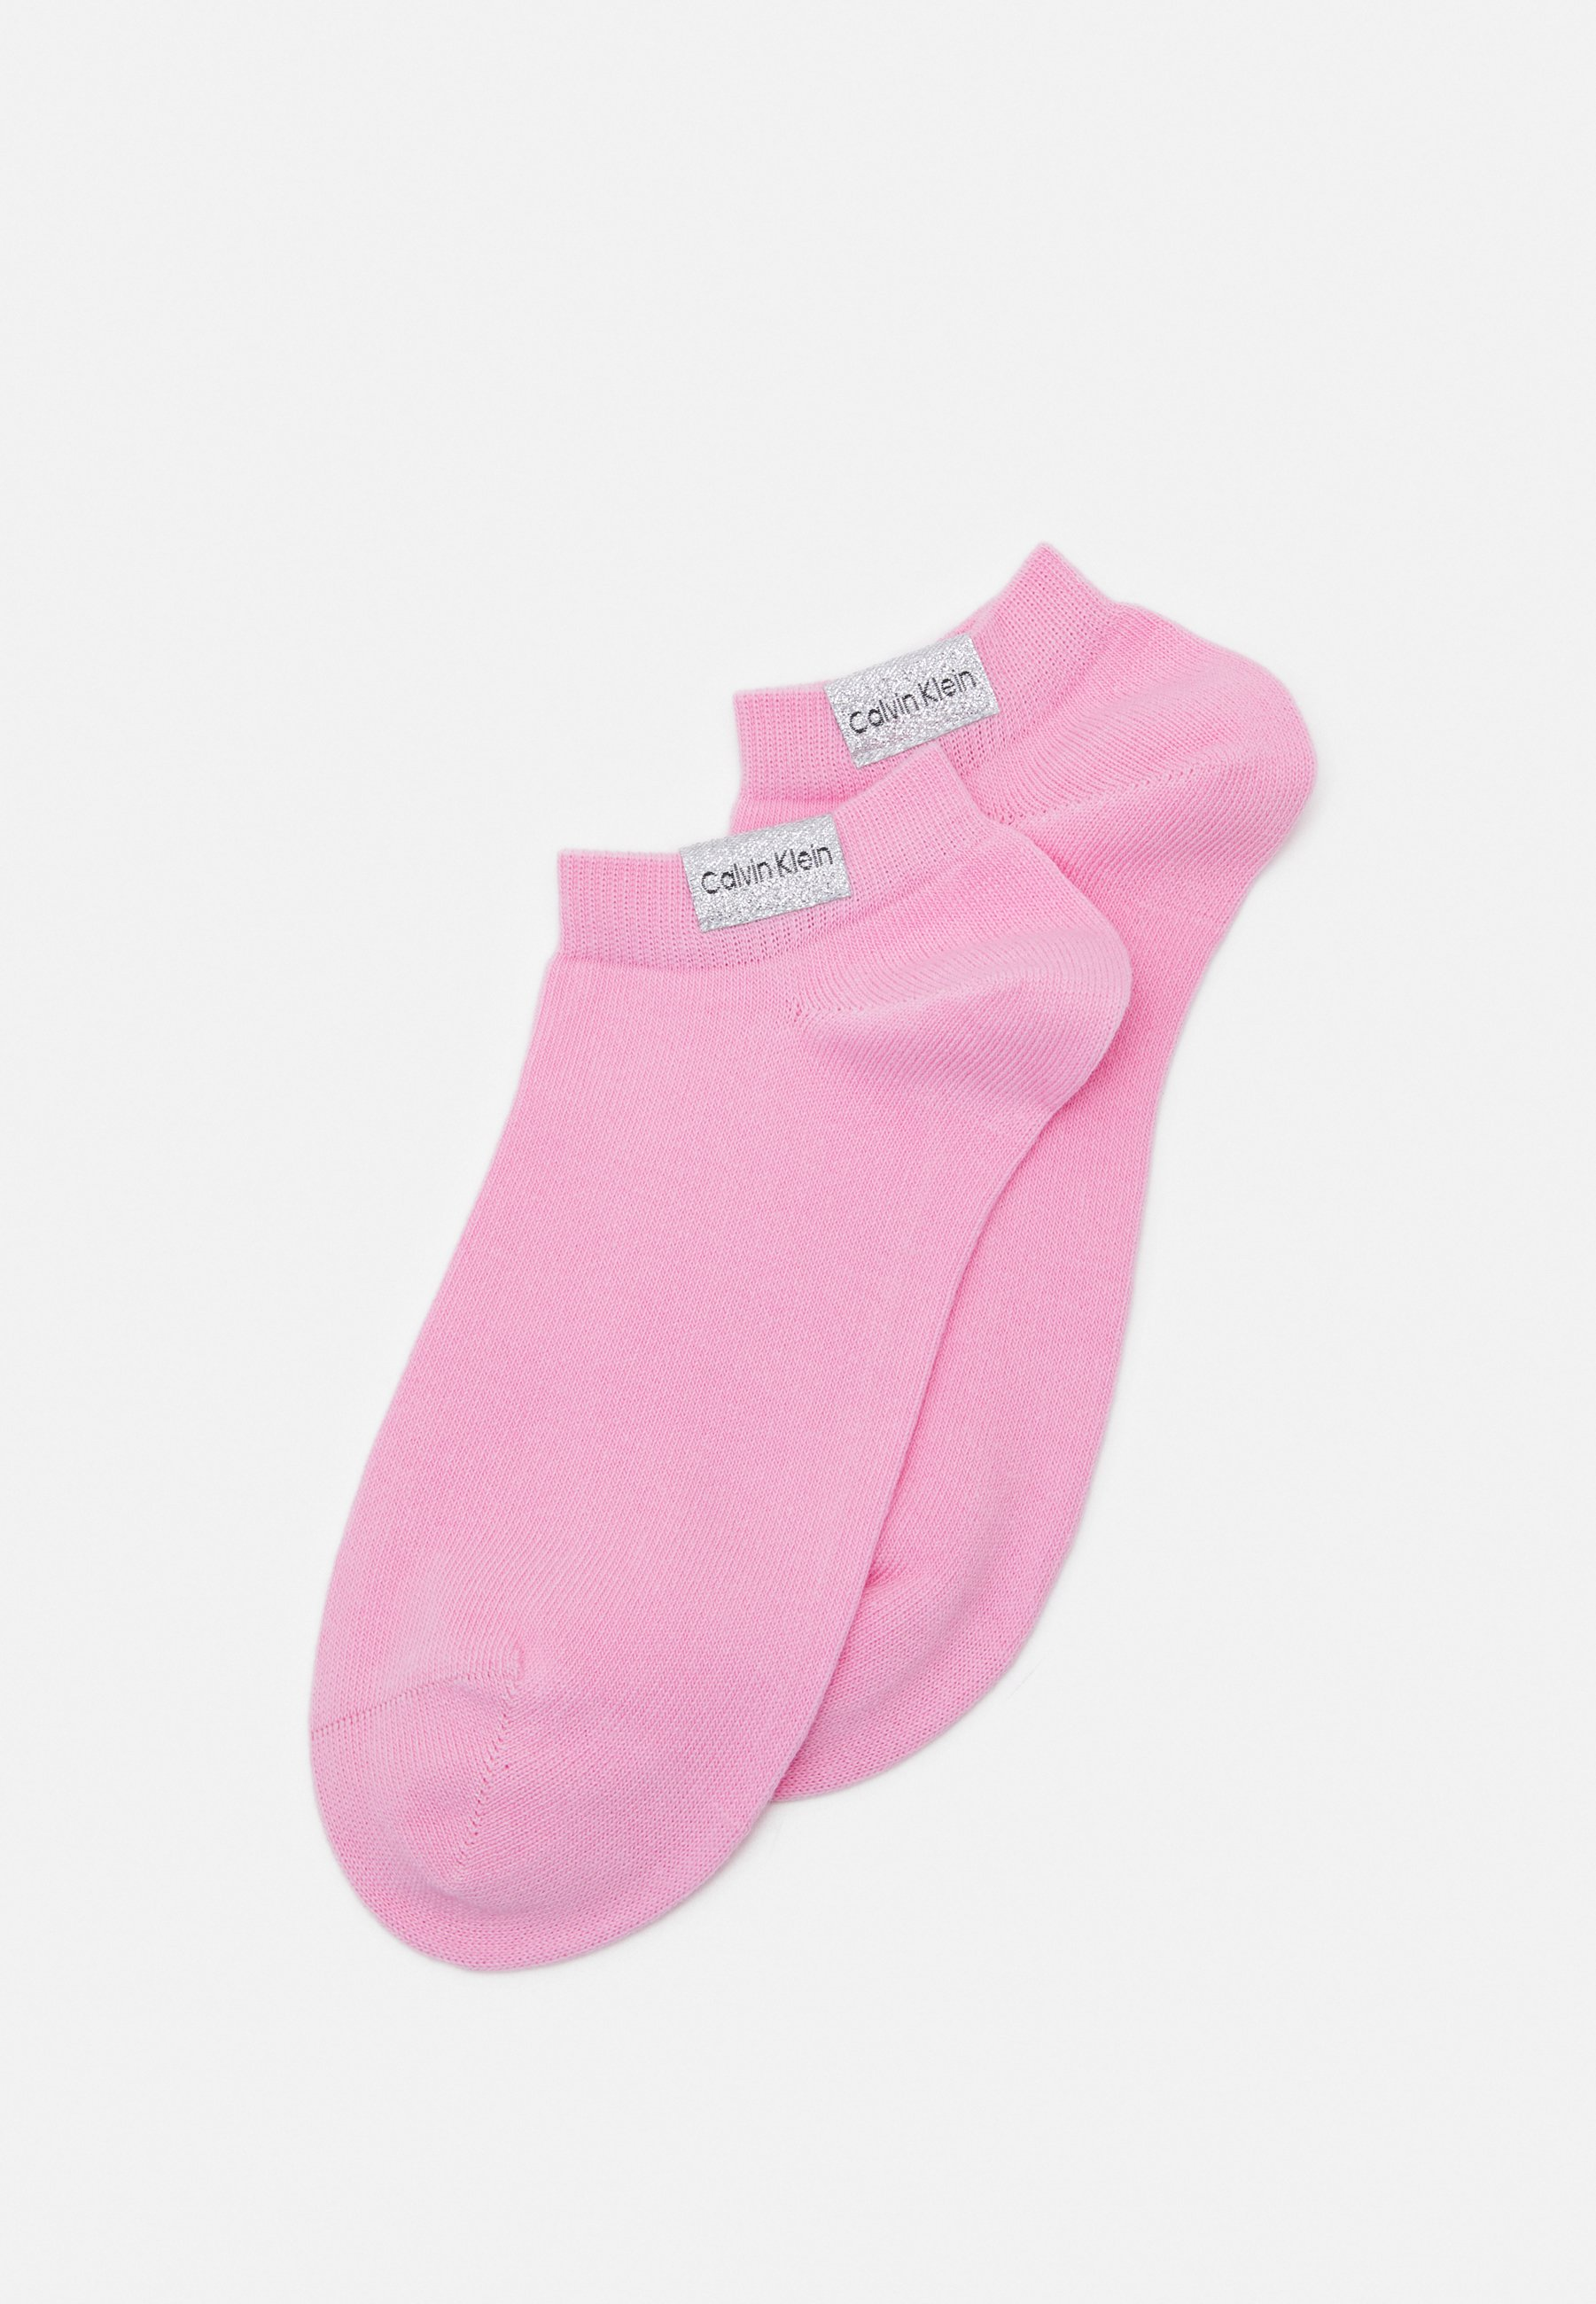 Femme WOMEN LINER JENAS REESE 2 PACK - Chaussettes